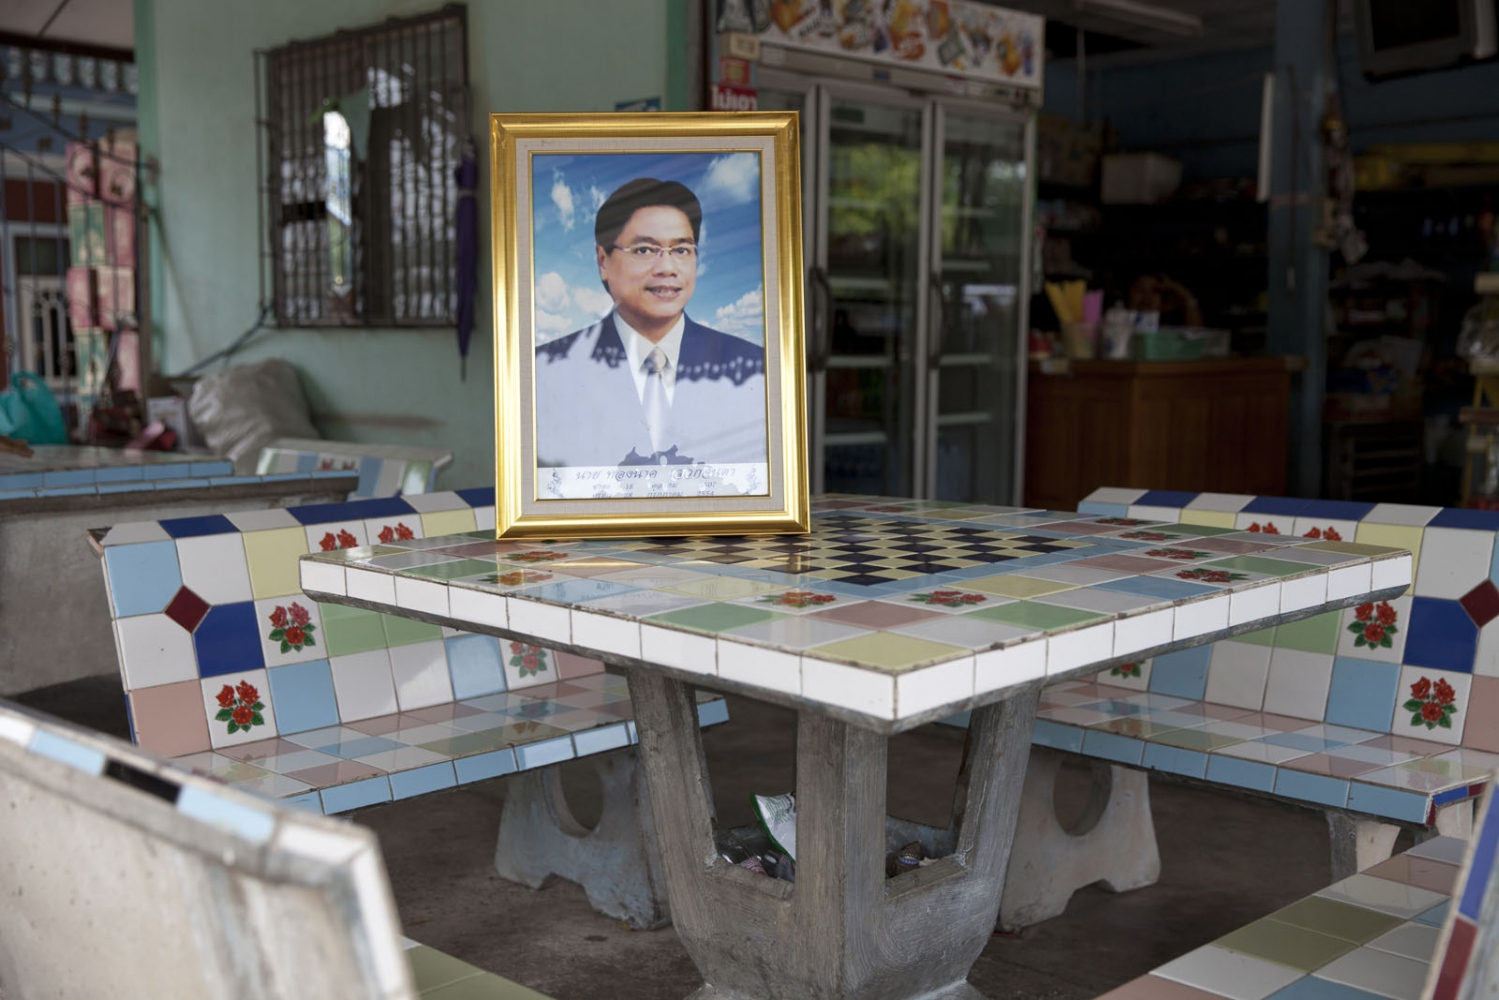 Thongnak SAWEKCHINDA Mr Thongnak Sawekchinda, 47, was shot 9 times whilst sitting outside his home on 28 July 2011 in Samut Sakhon town. Thongnak had led villagers in Muang, Ban Phaeo, and Krathum Baen districts in high-profile protests against air pollution including dust and fumes which was coming from coal depots and separation factories.